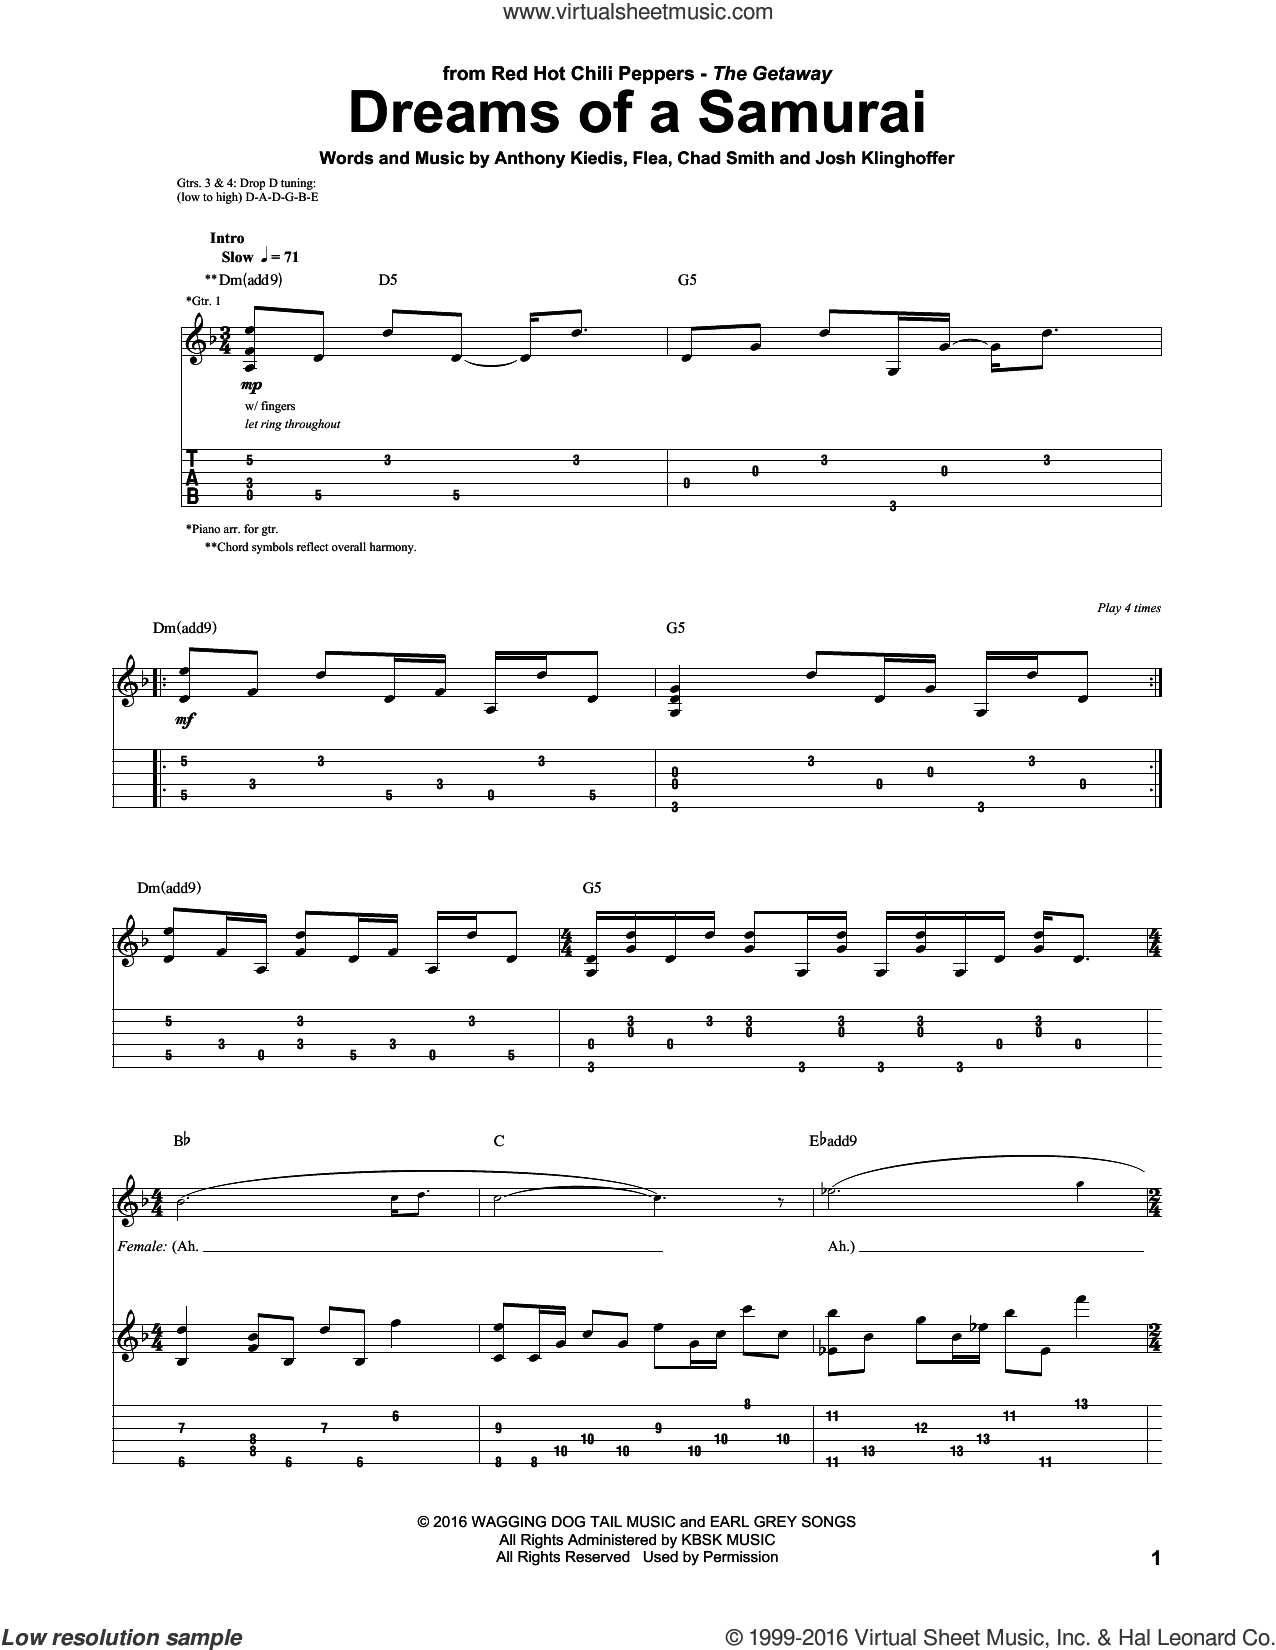 Dreams Of A Samurai sheet music for guitar (tablature) by Red Hot Chili Peppers, Anthony Kiedis, Chad Smith, Flea and Josh Klinghoffer, intermediate skill level